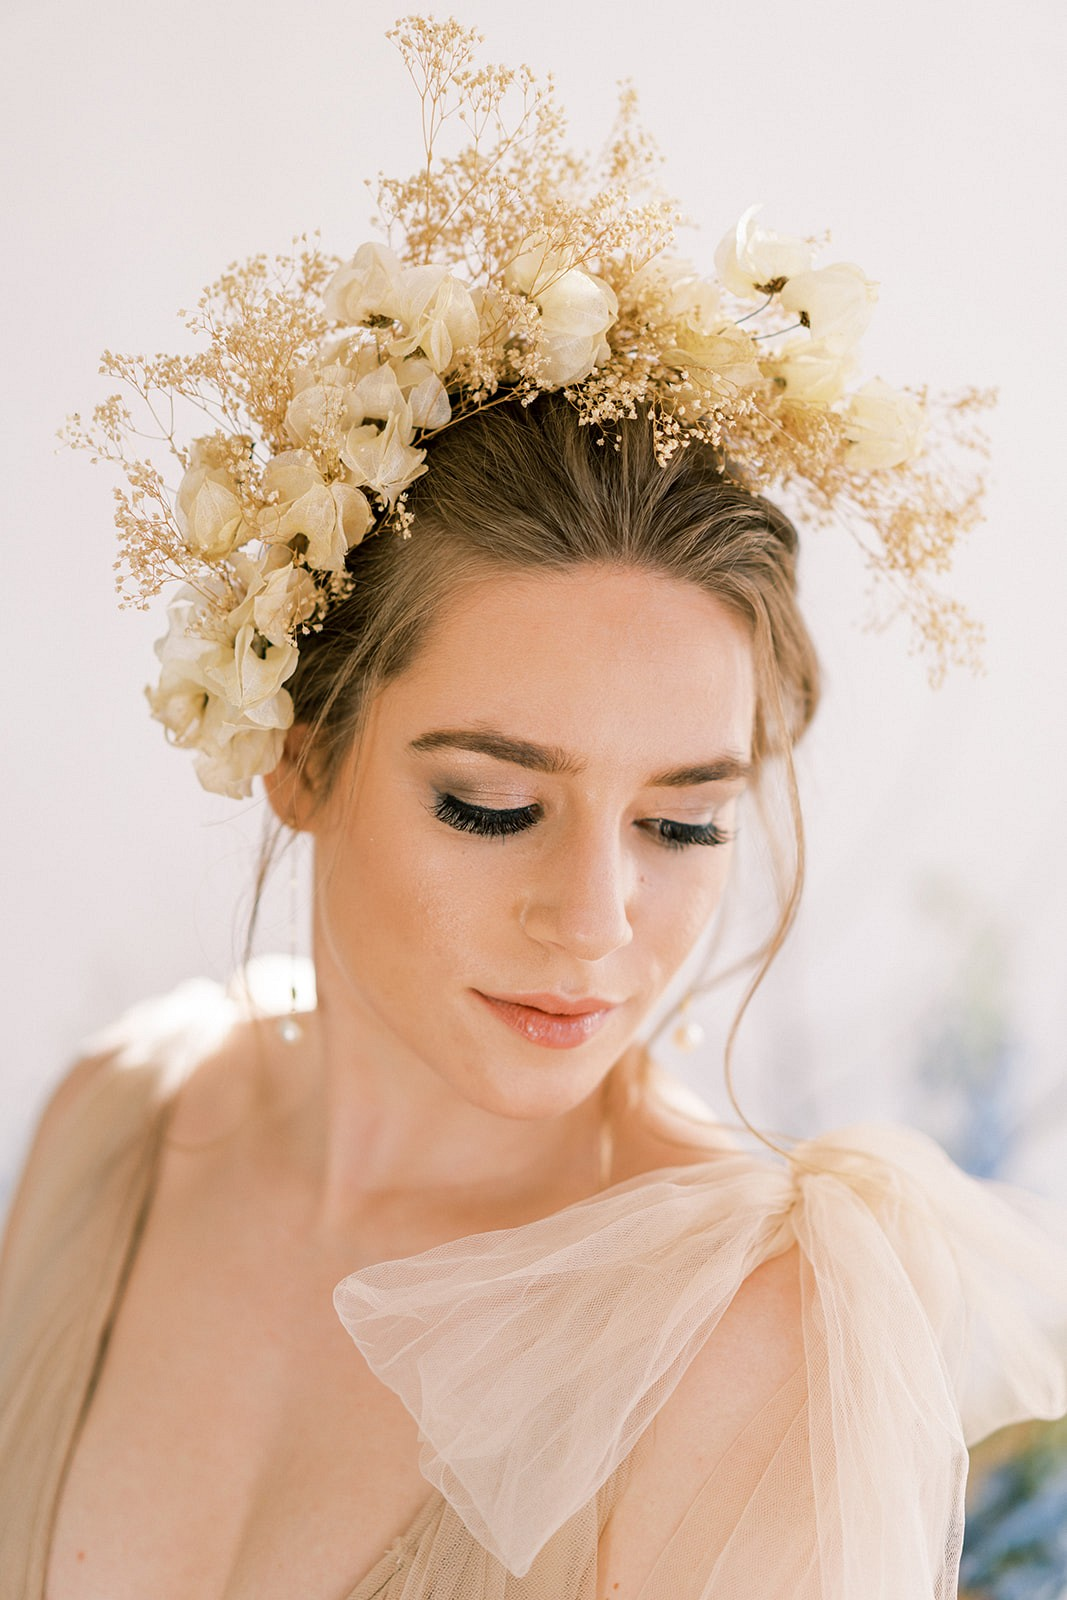 Marina Claire Photography - Bride in off white wedding dress with floral headdress